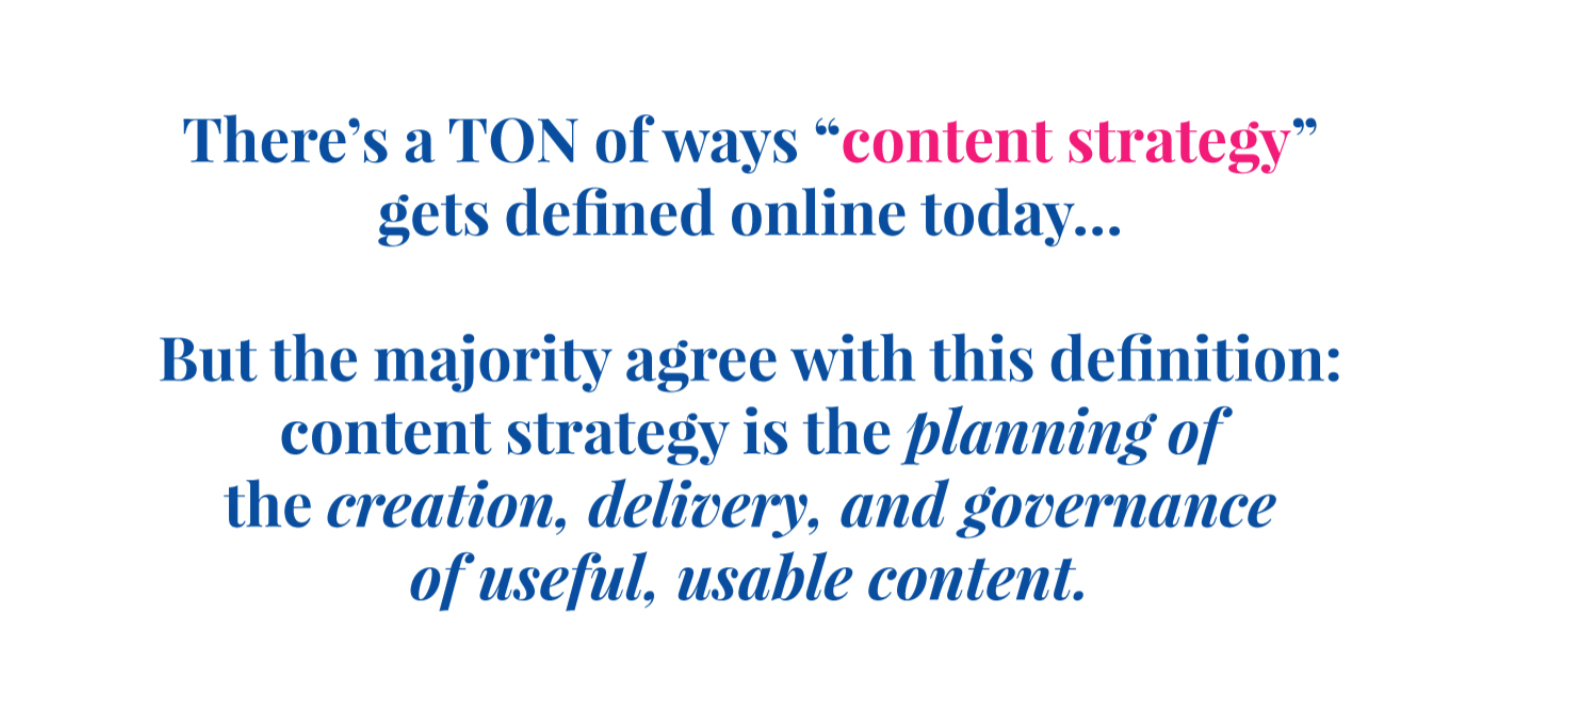 content strategy definition